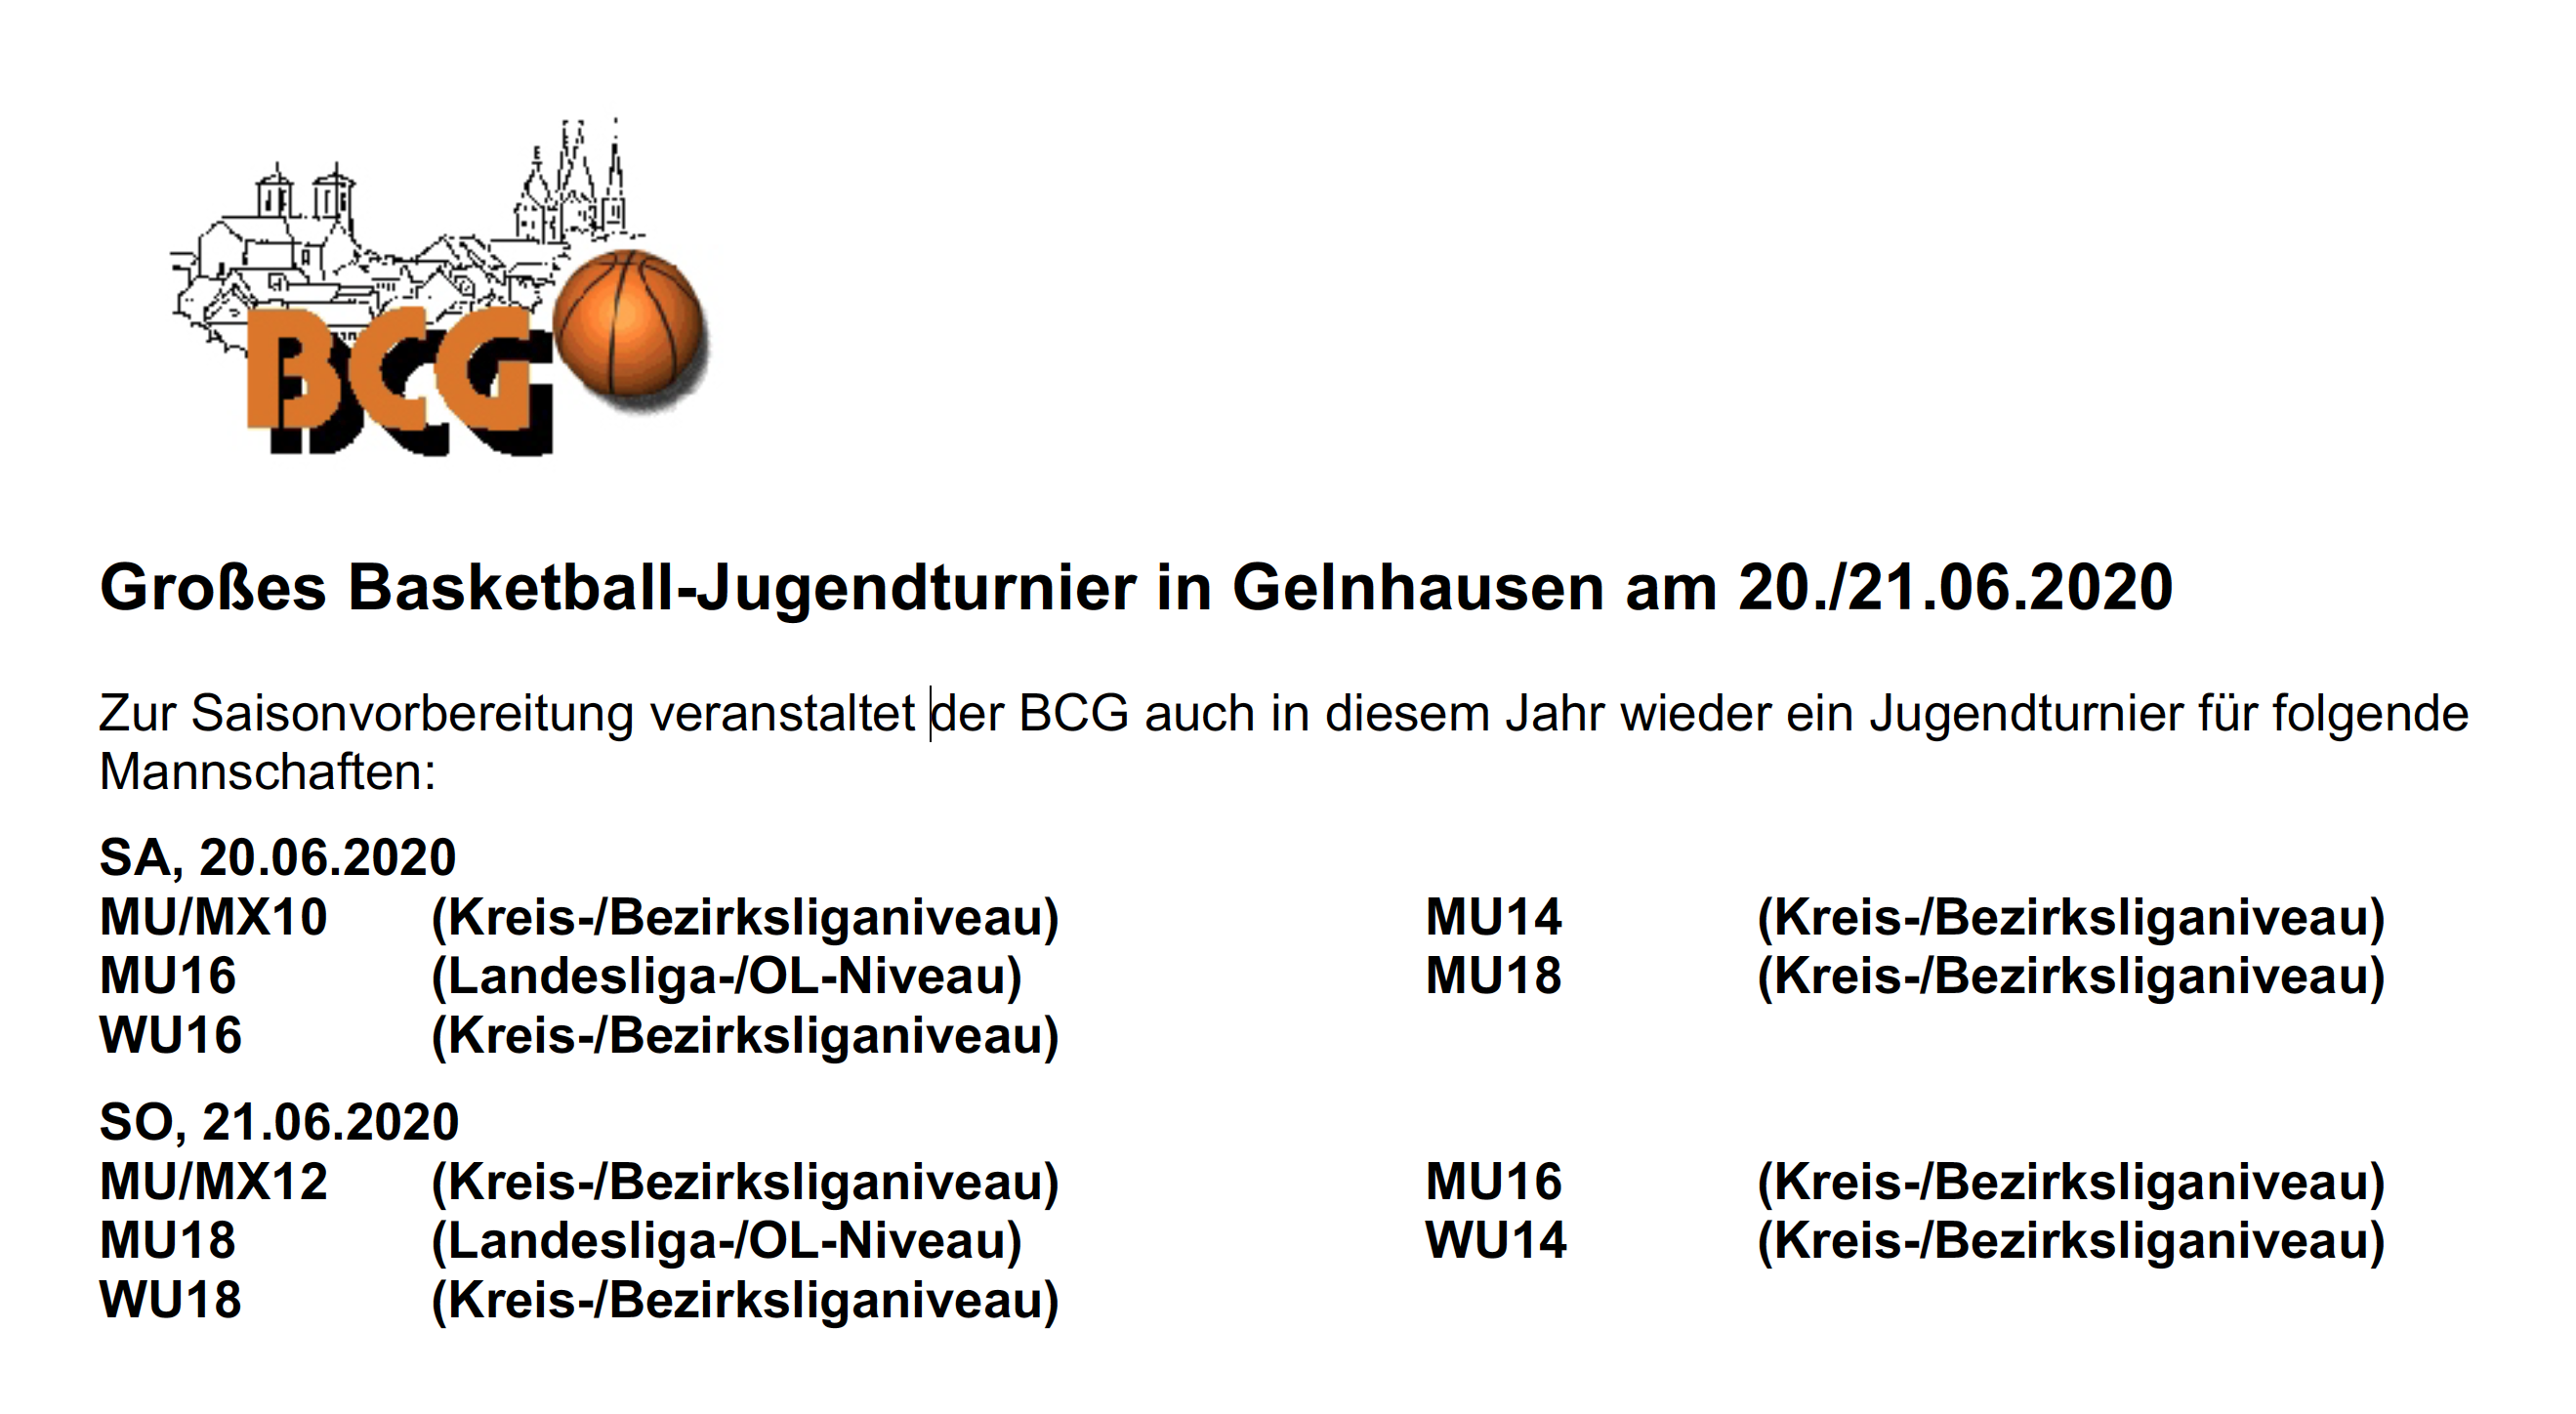 Basketball-Jugendturnier in Gelnhausen